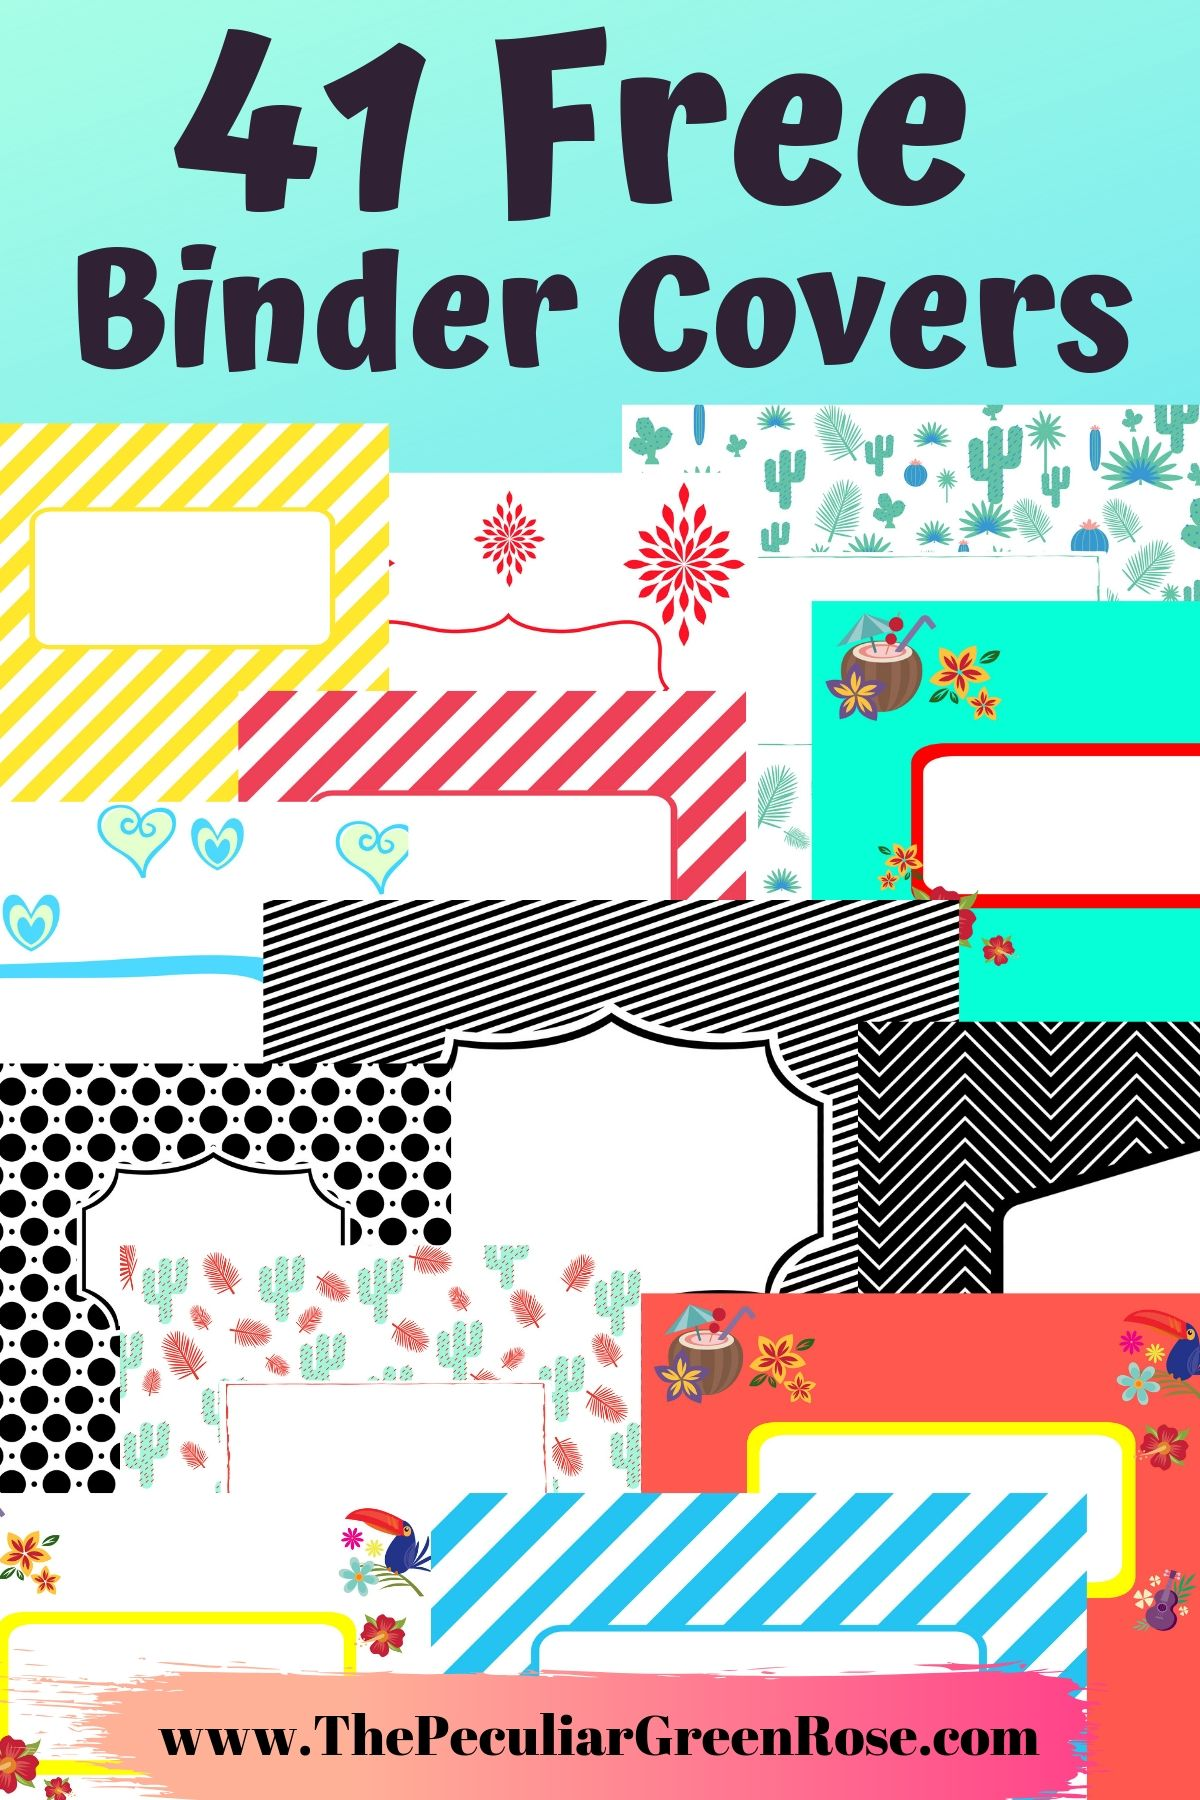 image about Printable Binder Covers Free titled 41 Cost-free Printable Binder Handles - The Unusual Eco-friendly Rose